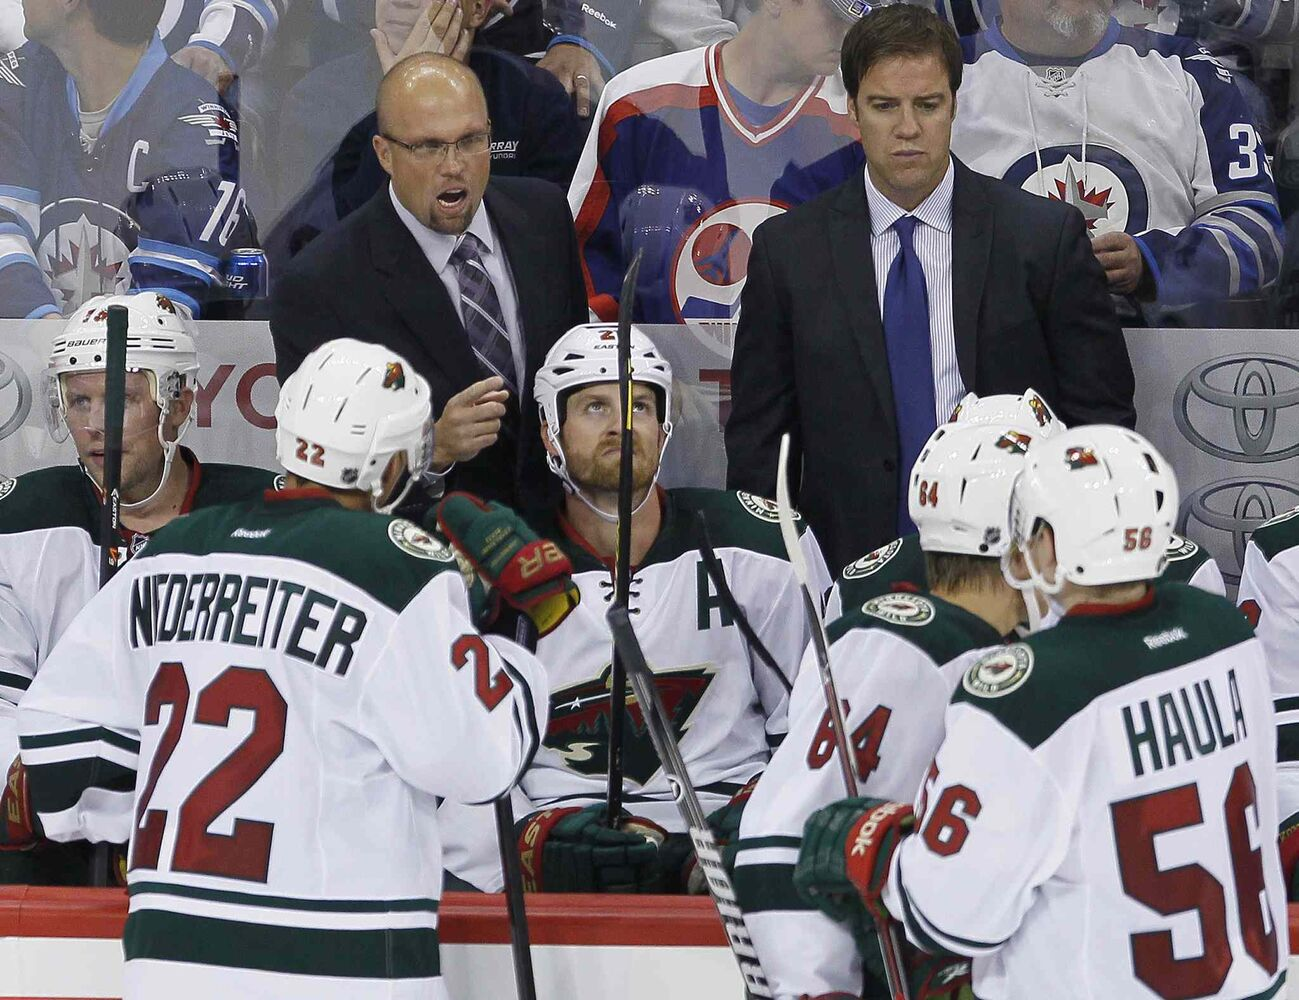 Minnesota Wild head coach Mike Yeo talks to his team during the third period. (John Woods / The Canadian Press)